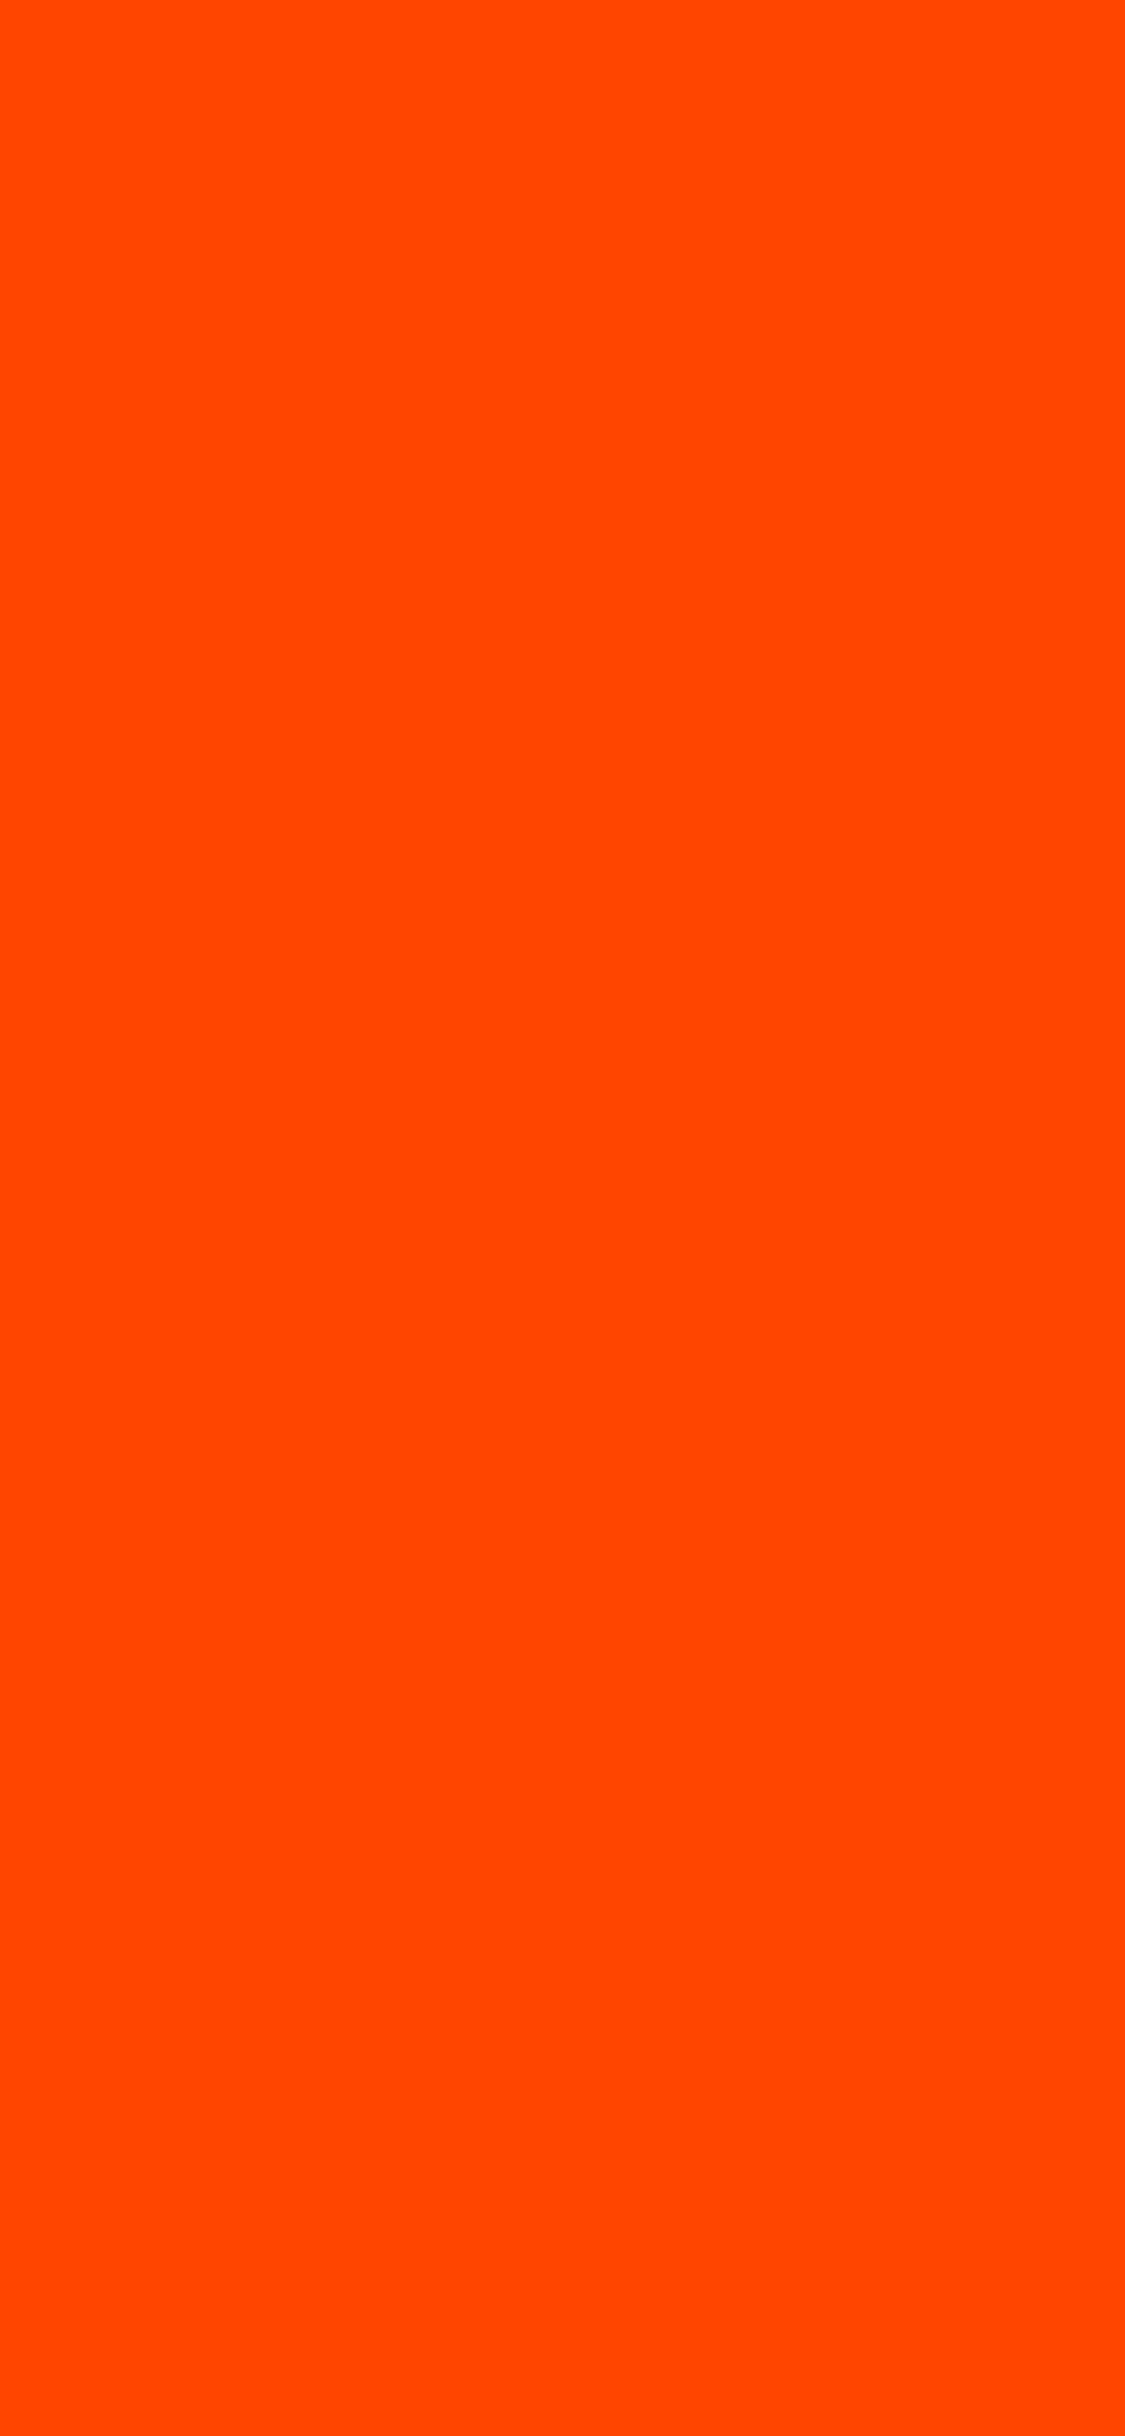 1125x2436 Orange-red Solid Color Background